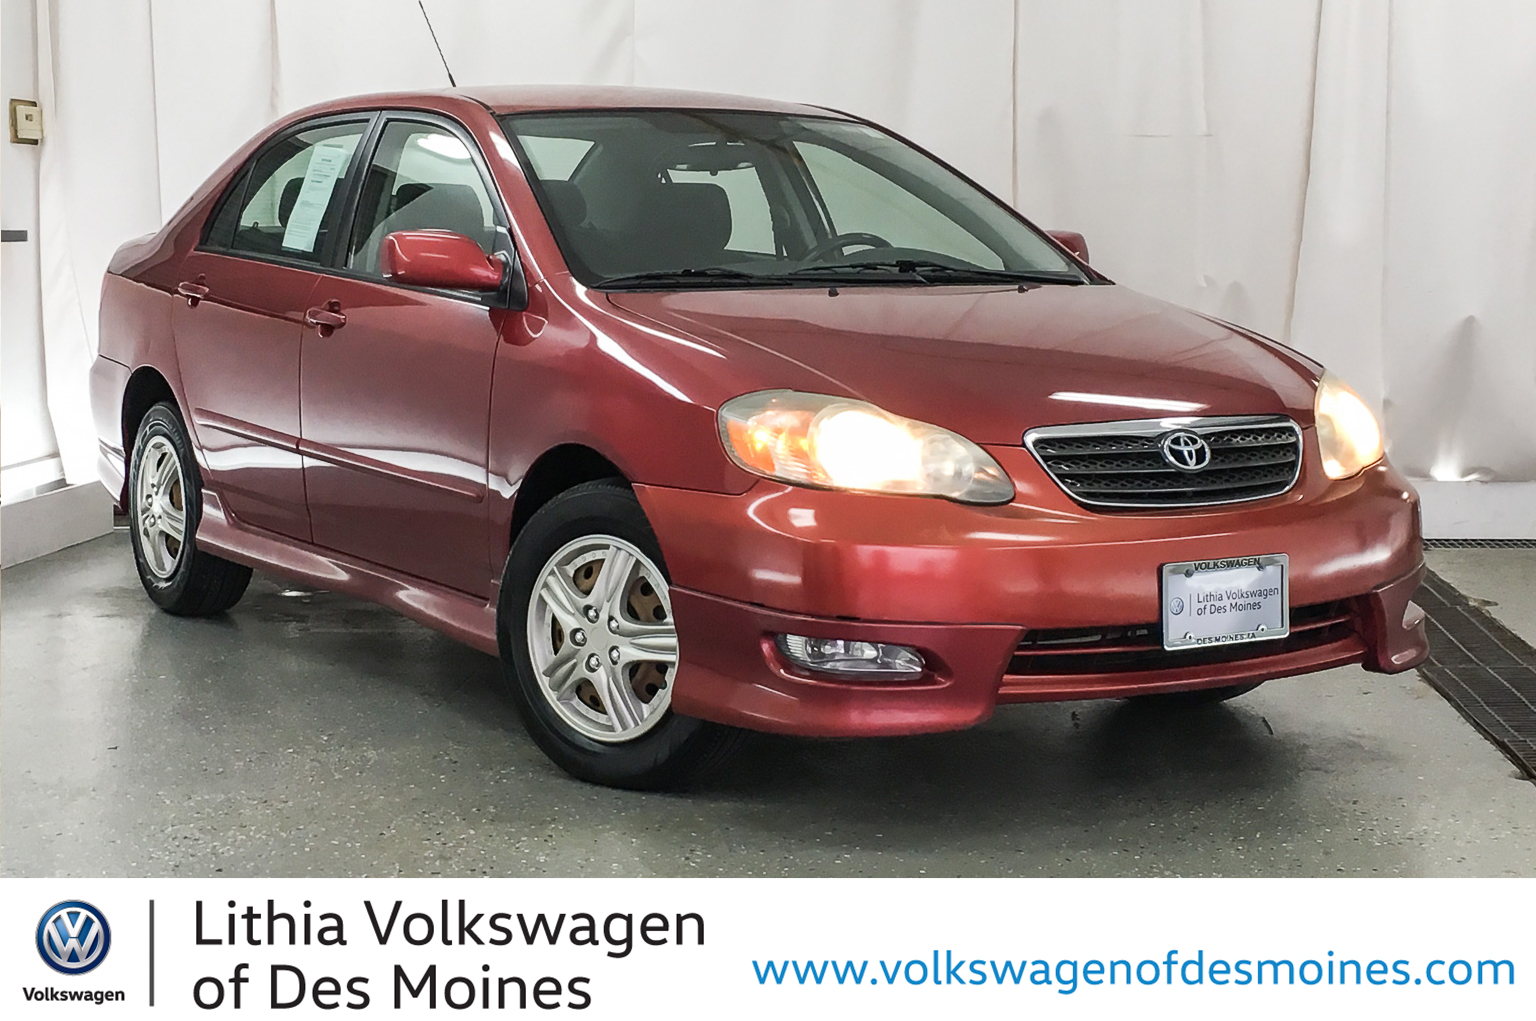 New And Used Toyota Corolla For Sale In Des Moines IA US News - 2006 corolla